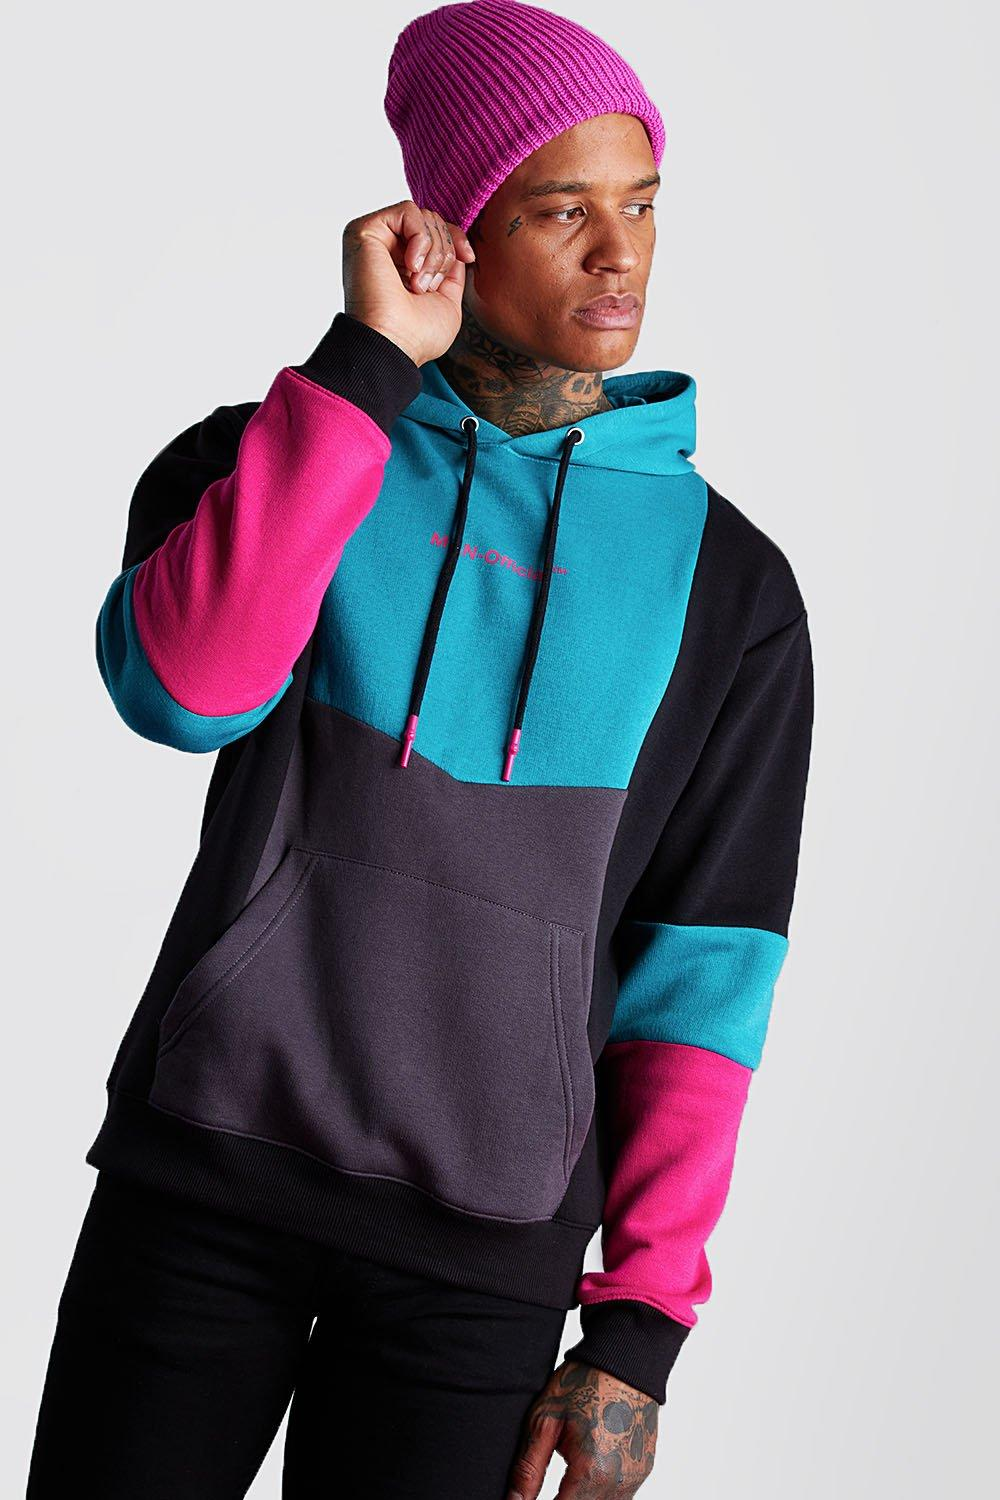 Men's Vintage Sweaters, Retro Jumpers 1920s to 1980s Mens Man Official Colour Block Hoodie - Green $32.00 AT vintagedancer.com